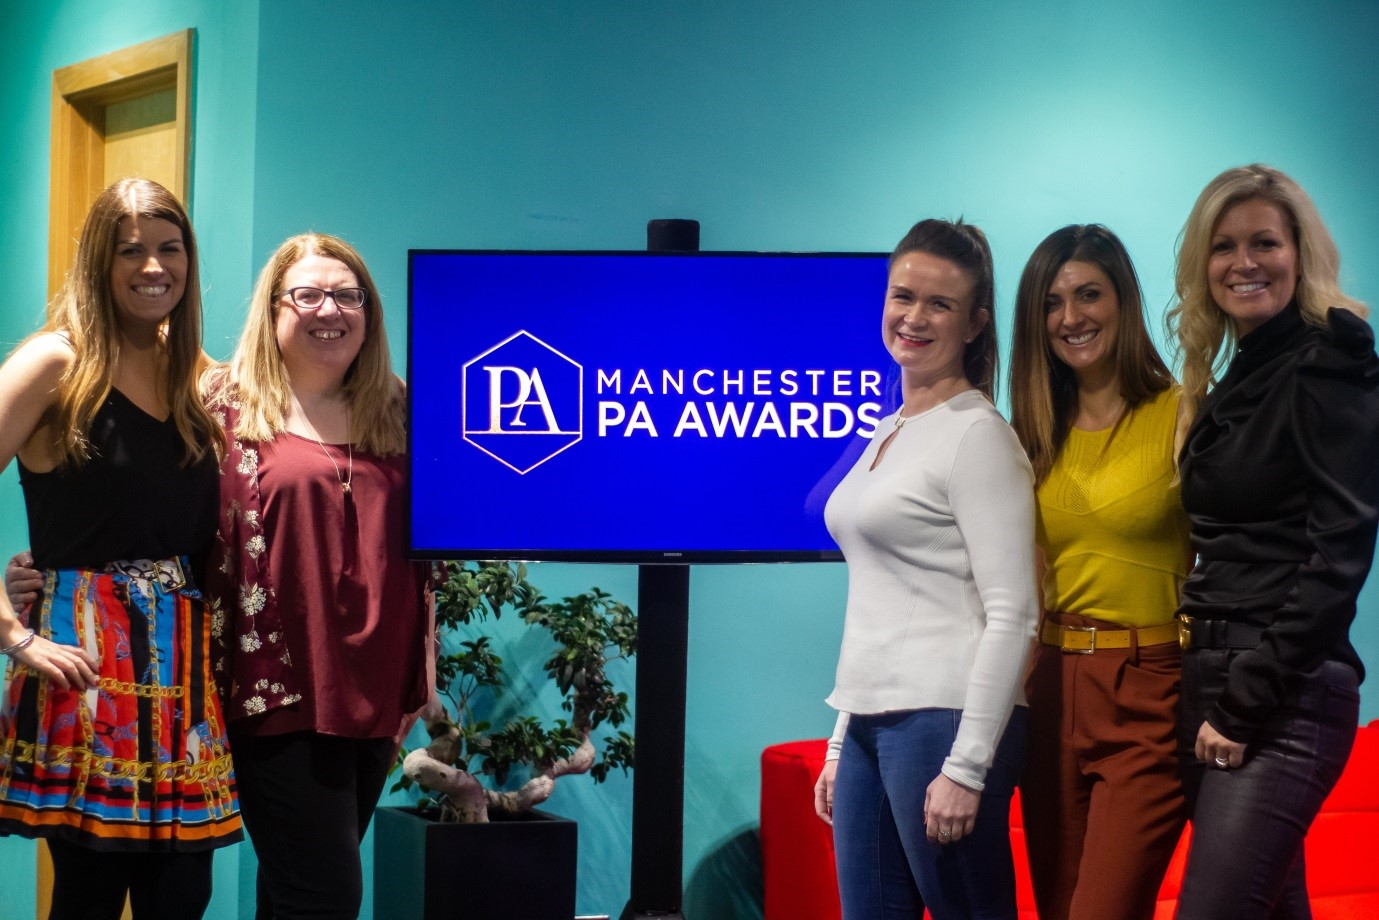 Make Events | Events Company Manchester | Manchester PA Awards